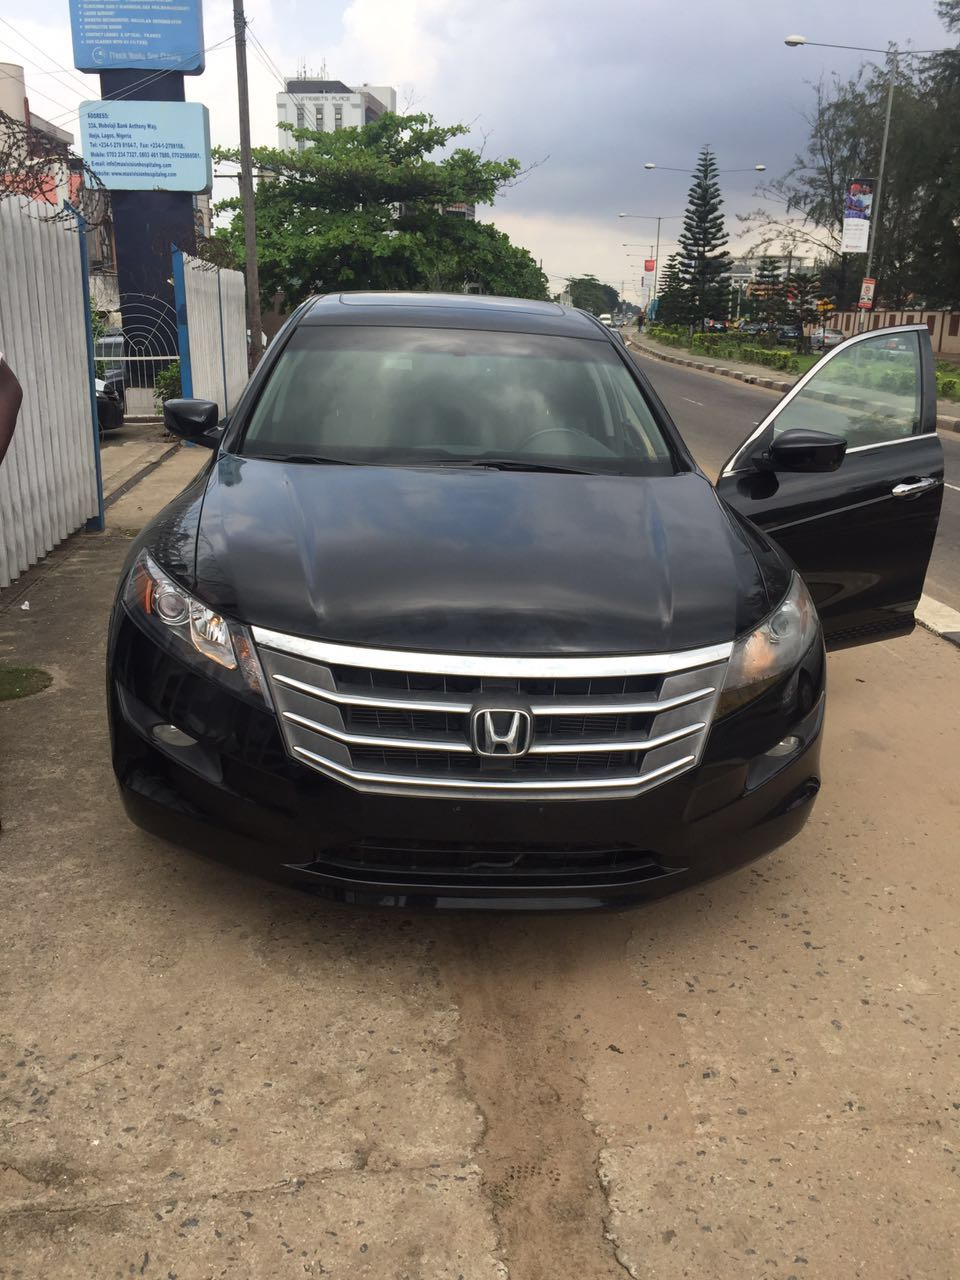 honda crosstour 2012 5m autos nigeria. Black Bedroom Furniture Sets. Home Design Ideas